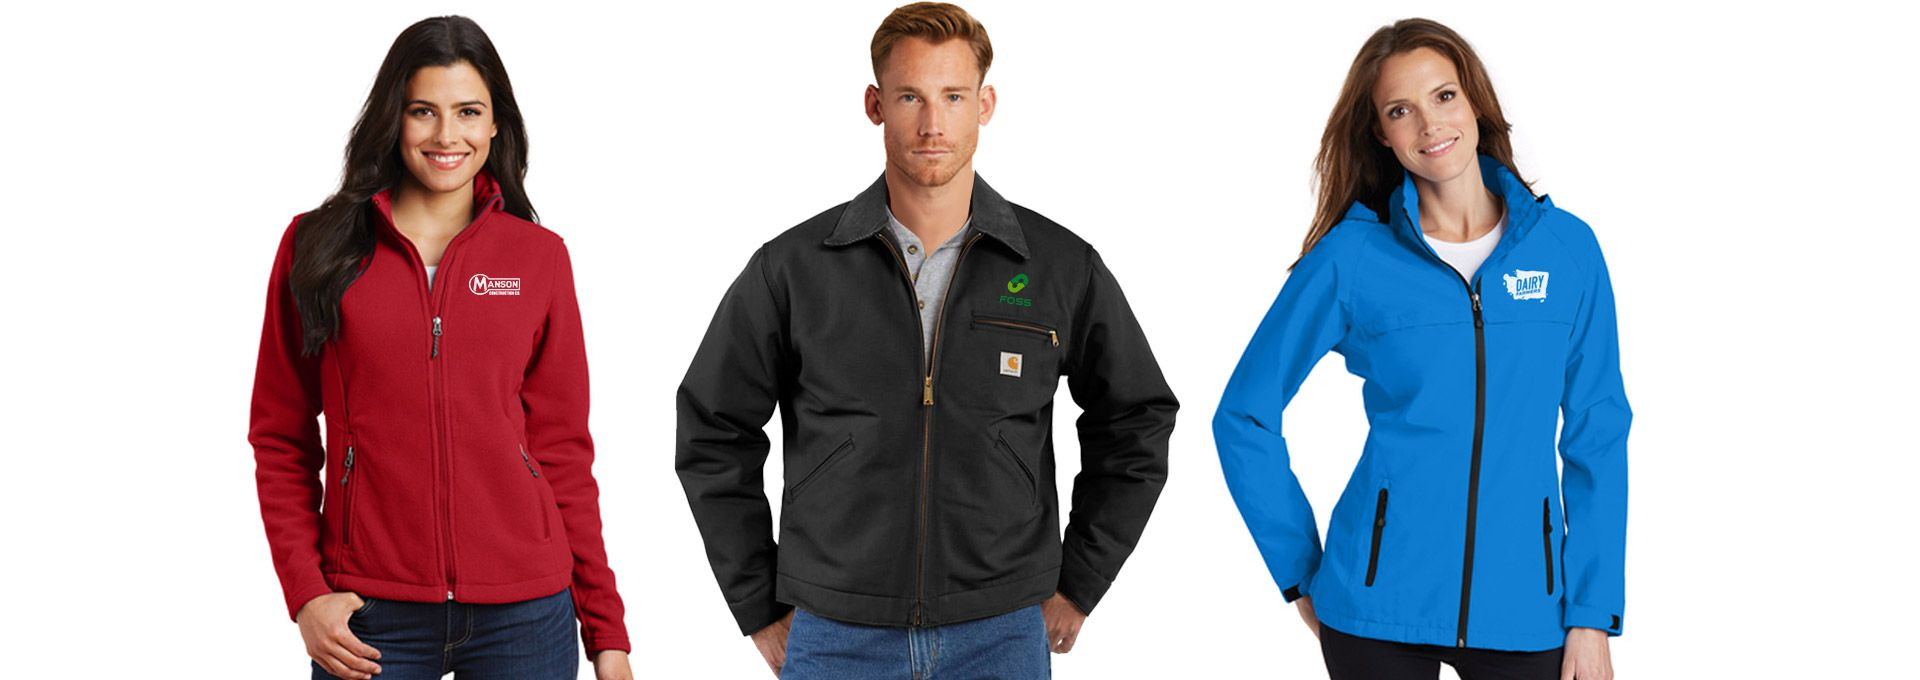 Custom Branded Corporate Logo Promotional Jackets Seattle